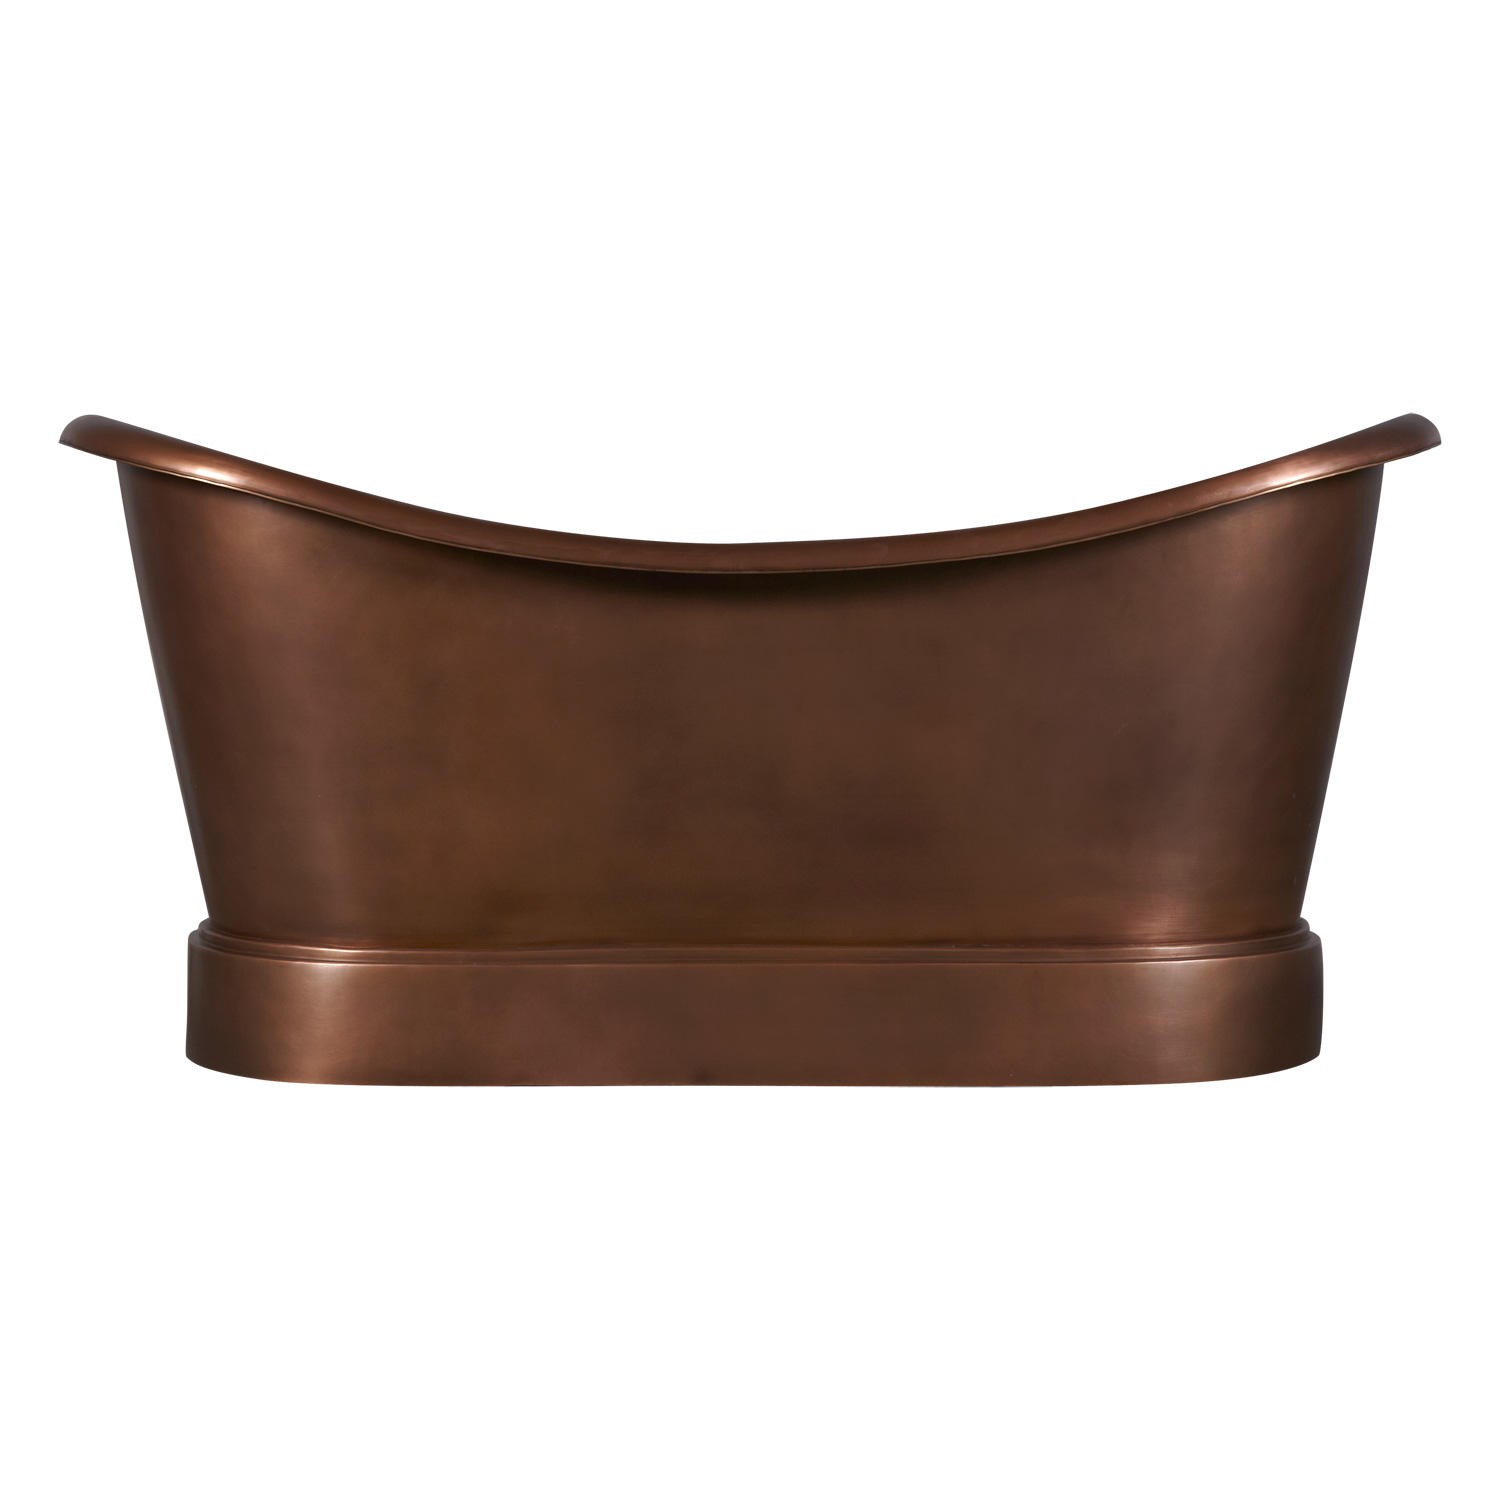 Smooth Double Slipper Copper Bathtub Copper Bathtubs Copper Tubs